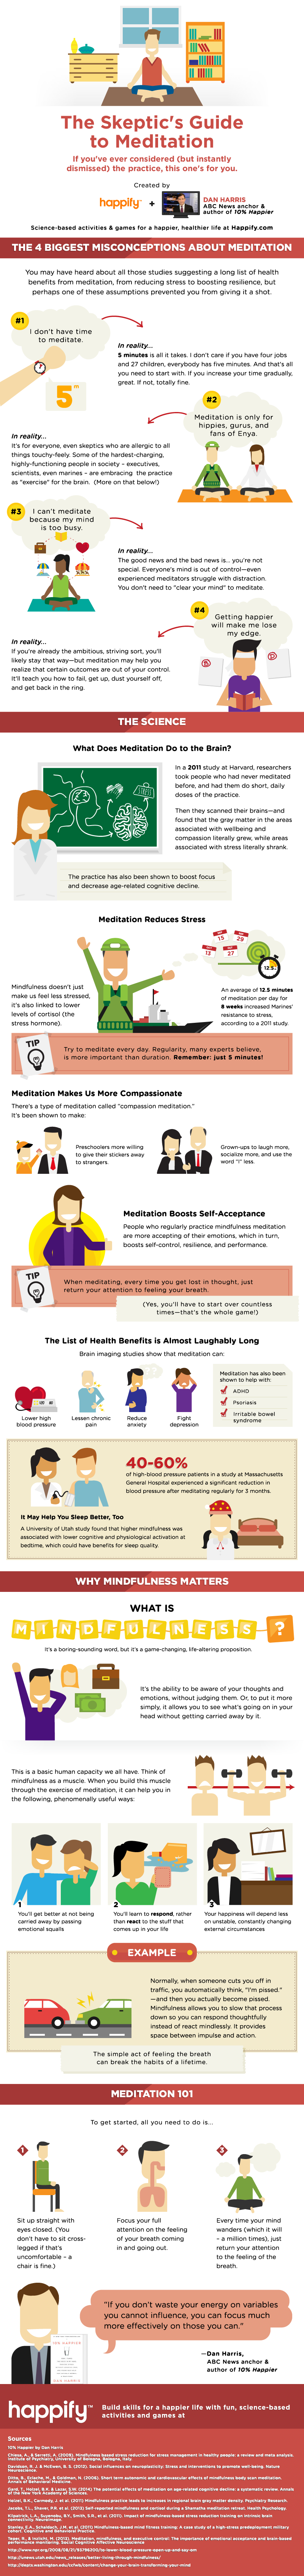 Feeling Skeptical About Meditation? This Guide Is For You! Infographic